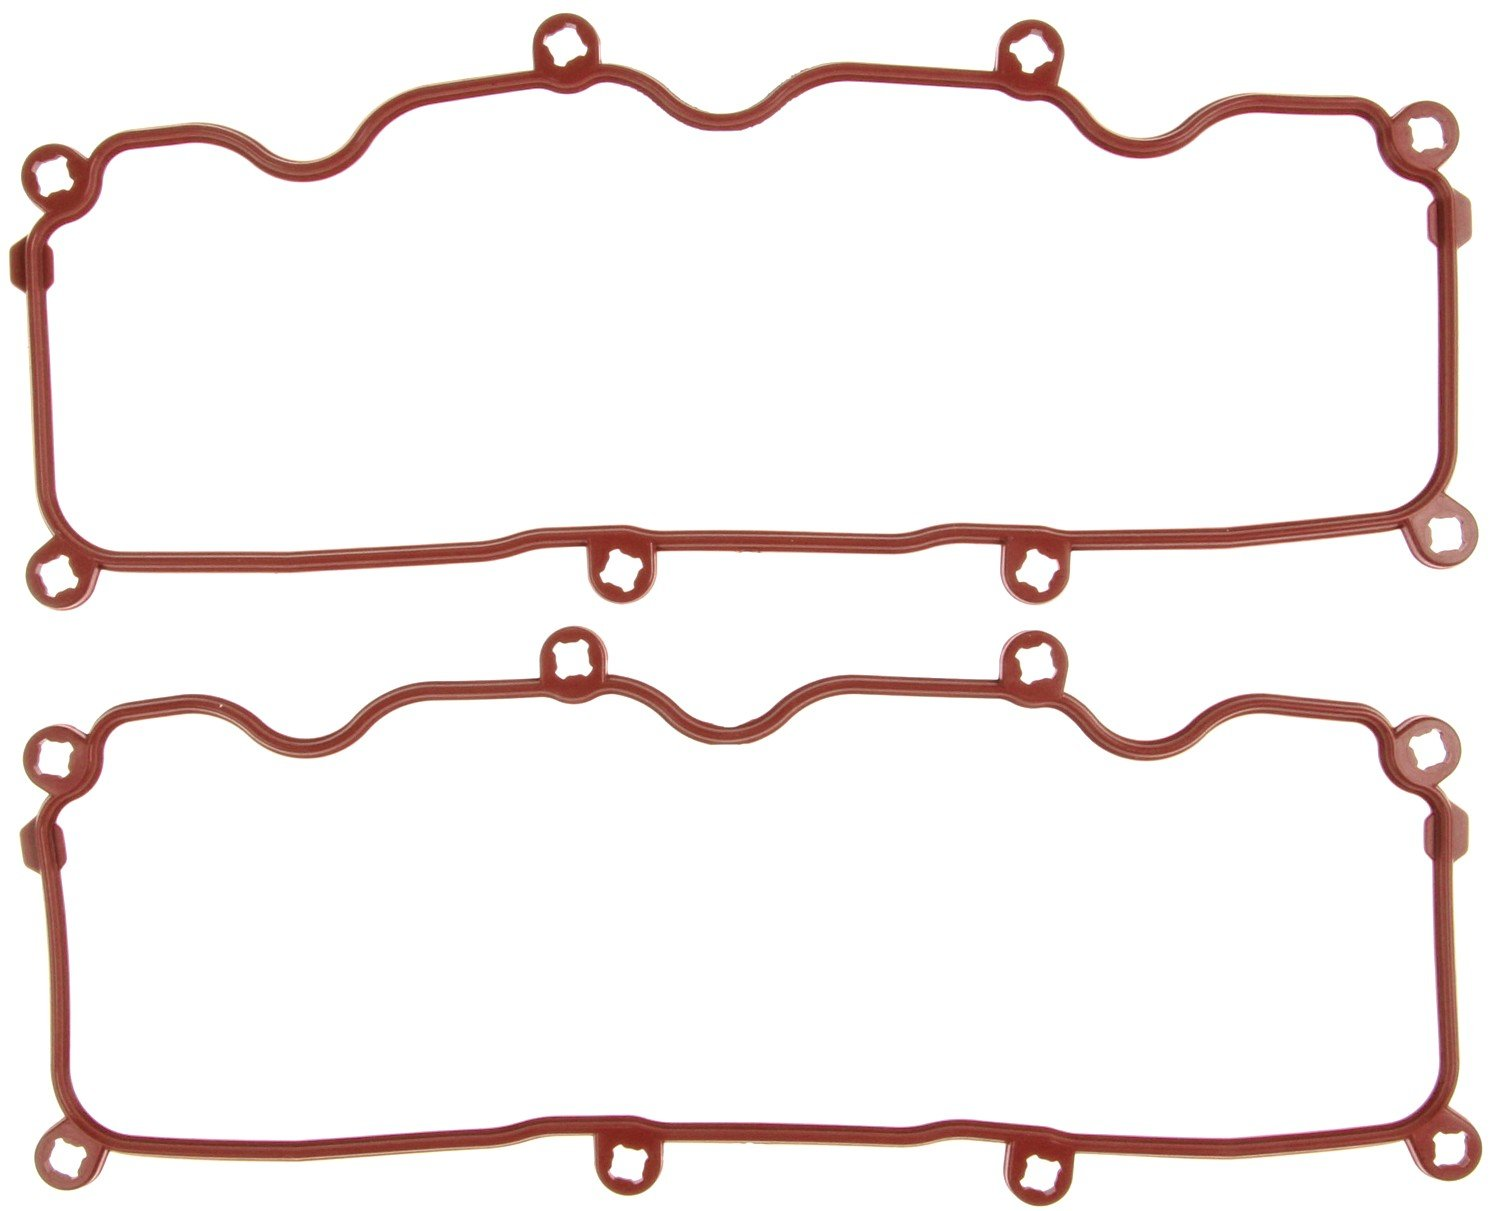 hight resolution of 2000 ford ranger engine valve cover gasket set vg vs50145